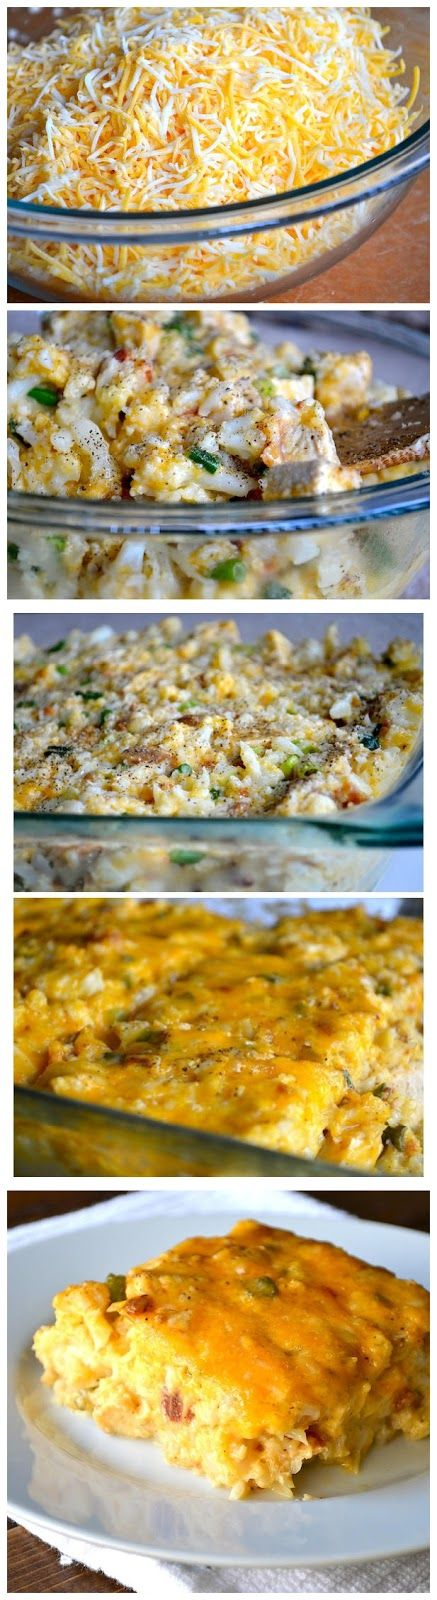 joysama images: loaded cauliflower & chicken casserole (THM S meal;  looks expensive to make with 16 oz's cheese, 2 heads cauli, 3 chicken breasts, bacon)